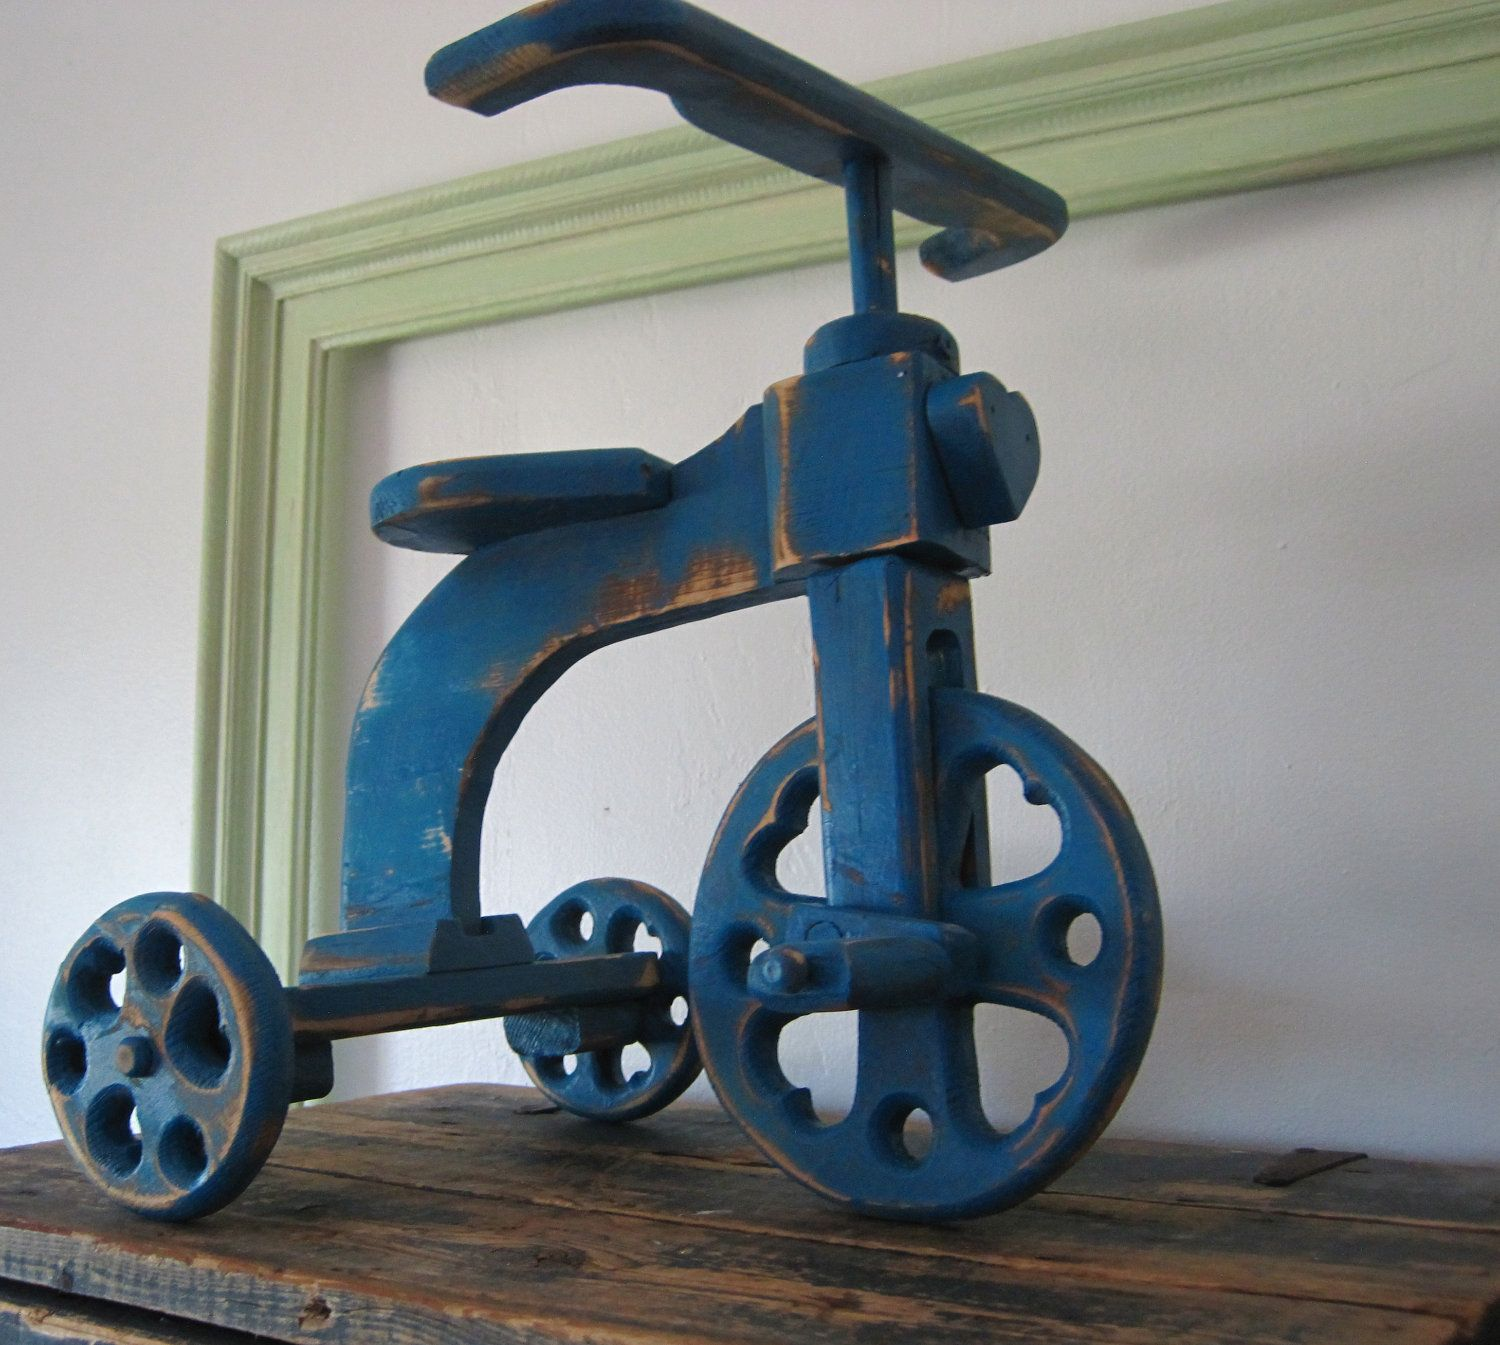 Rustic Wooden Tricycle Upped In Teal